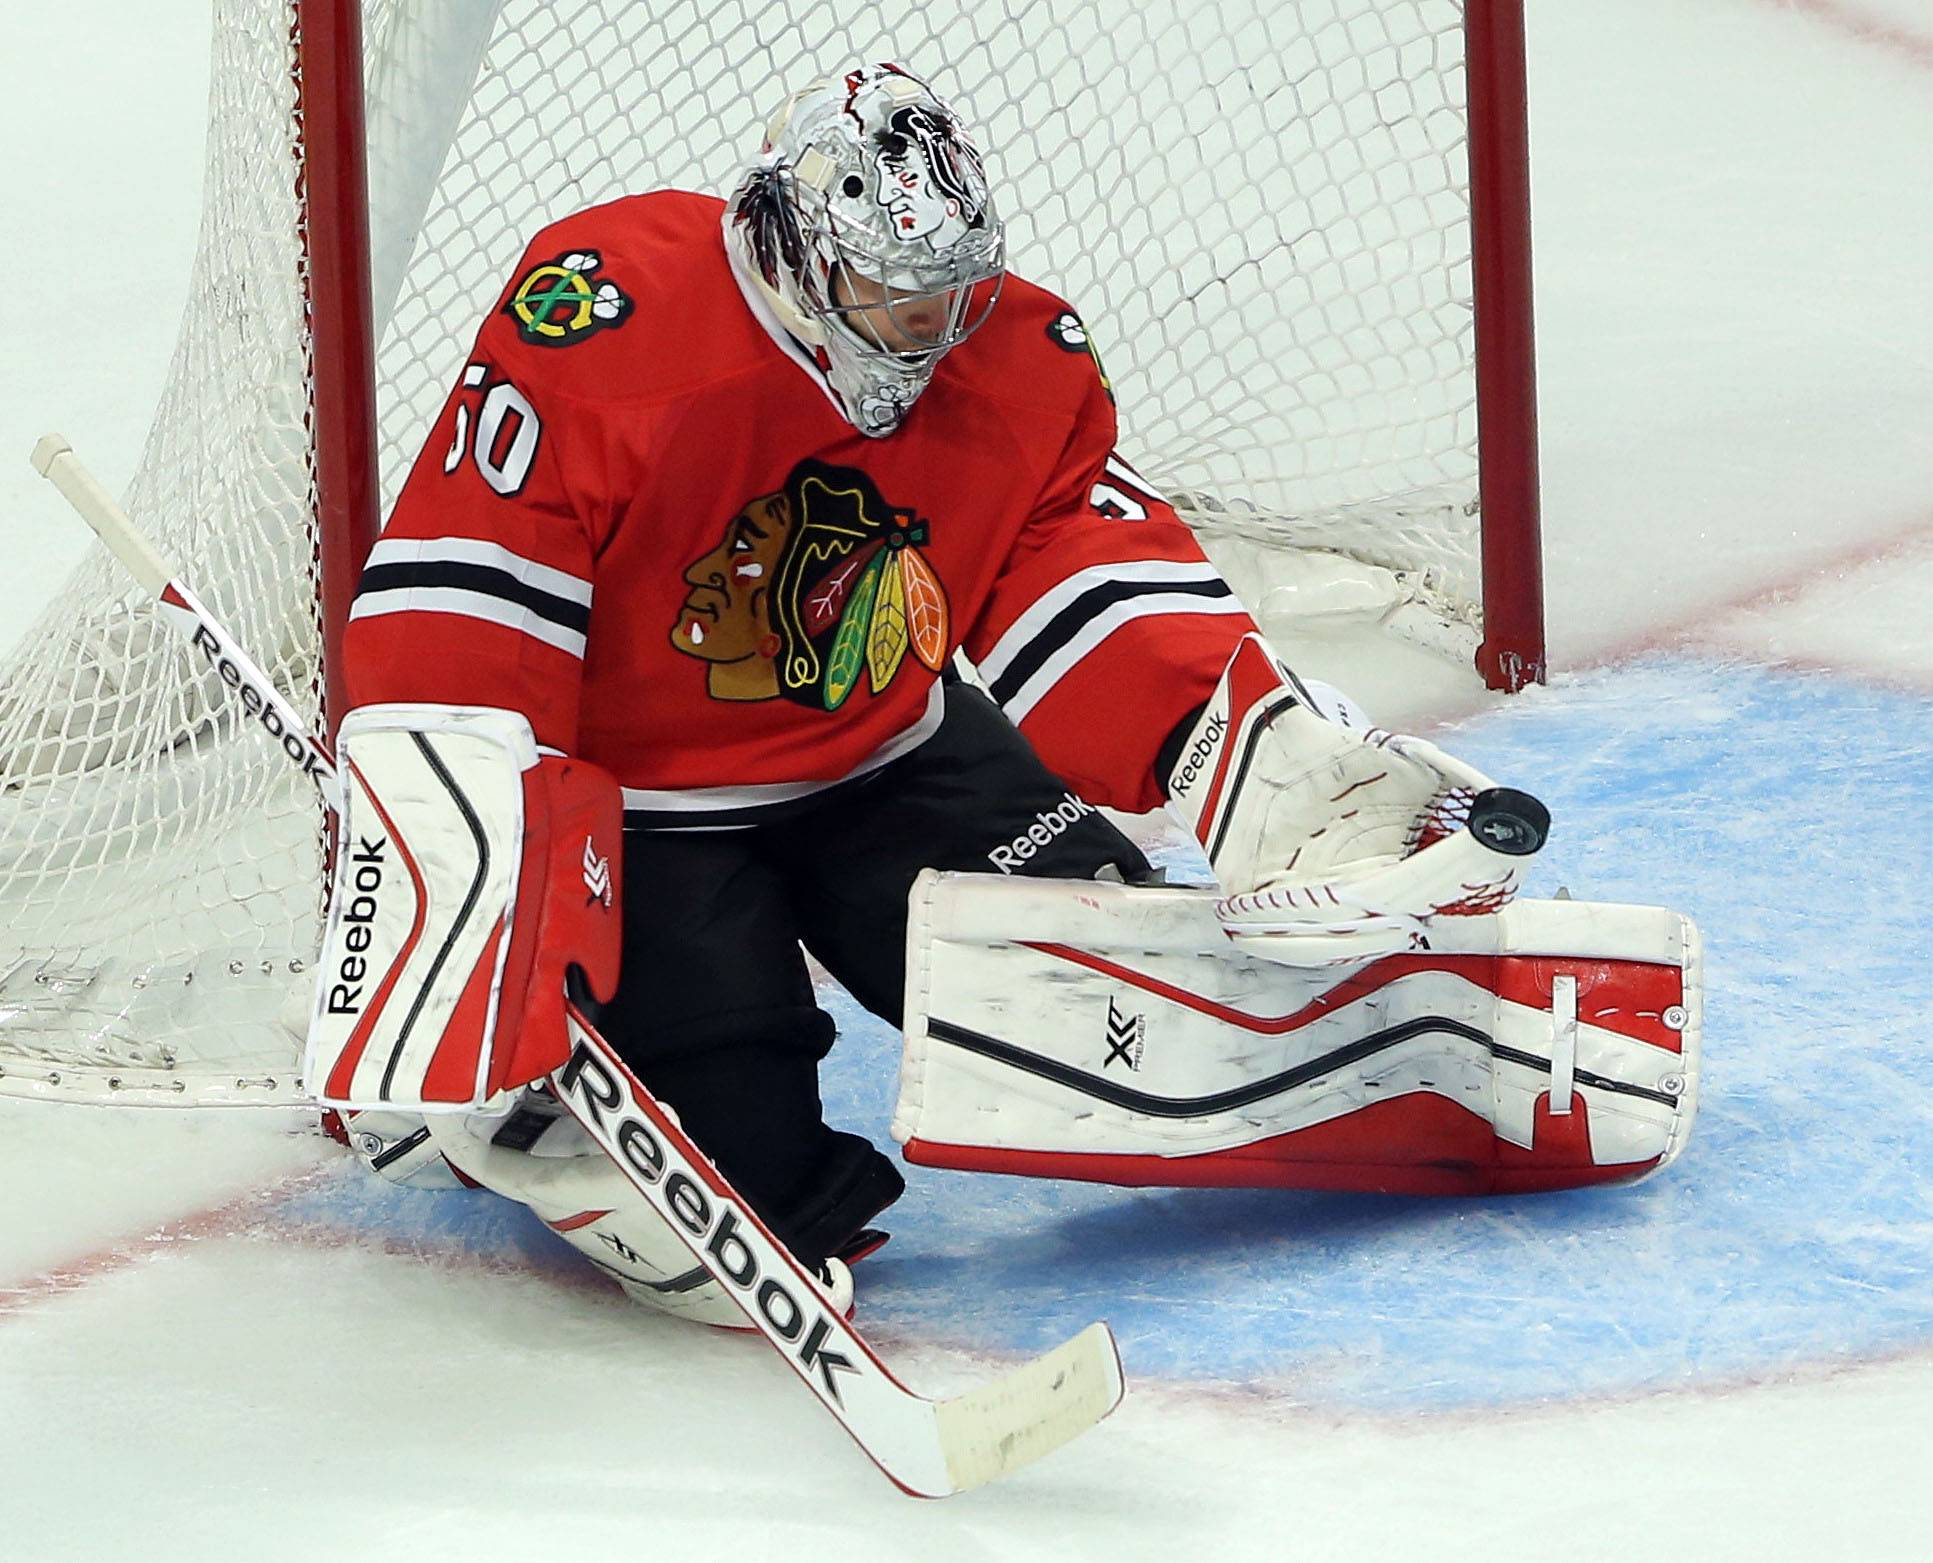 Blackhawks goalie Corey Crawford makes a save during game 3 of the NHL first-round Stanley Cup playoffs Monday night in Chicago. He made 34 saves in the victory.